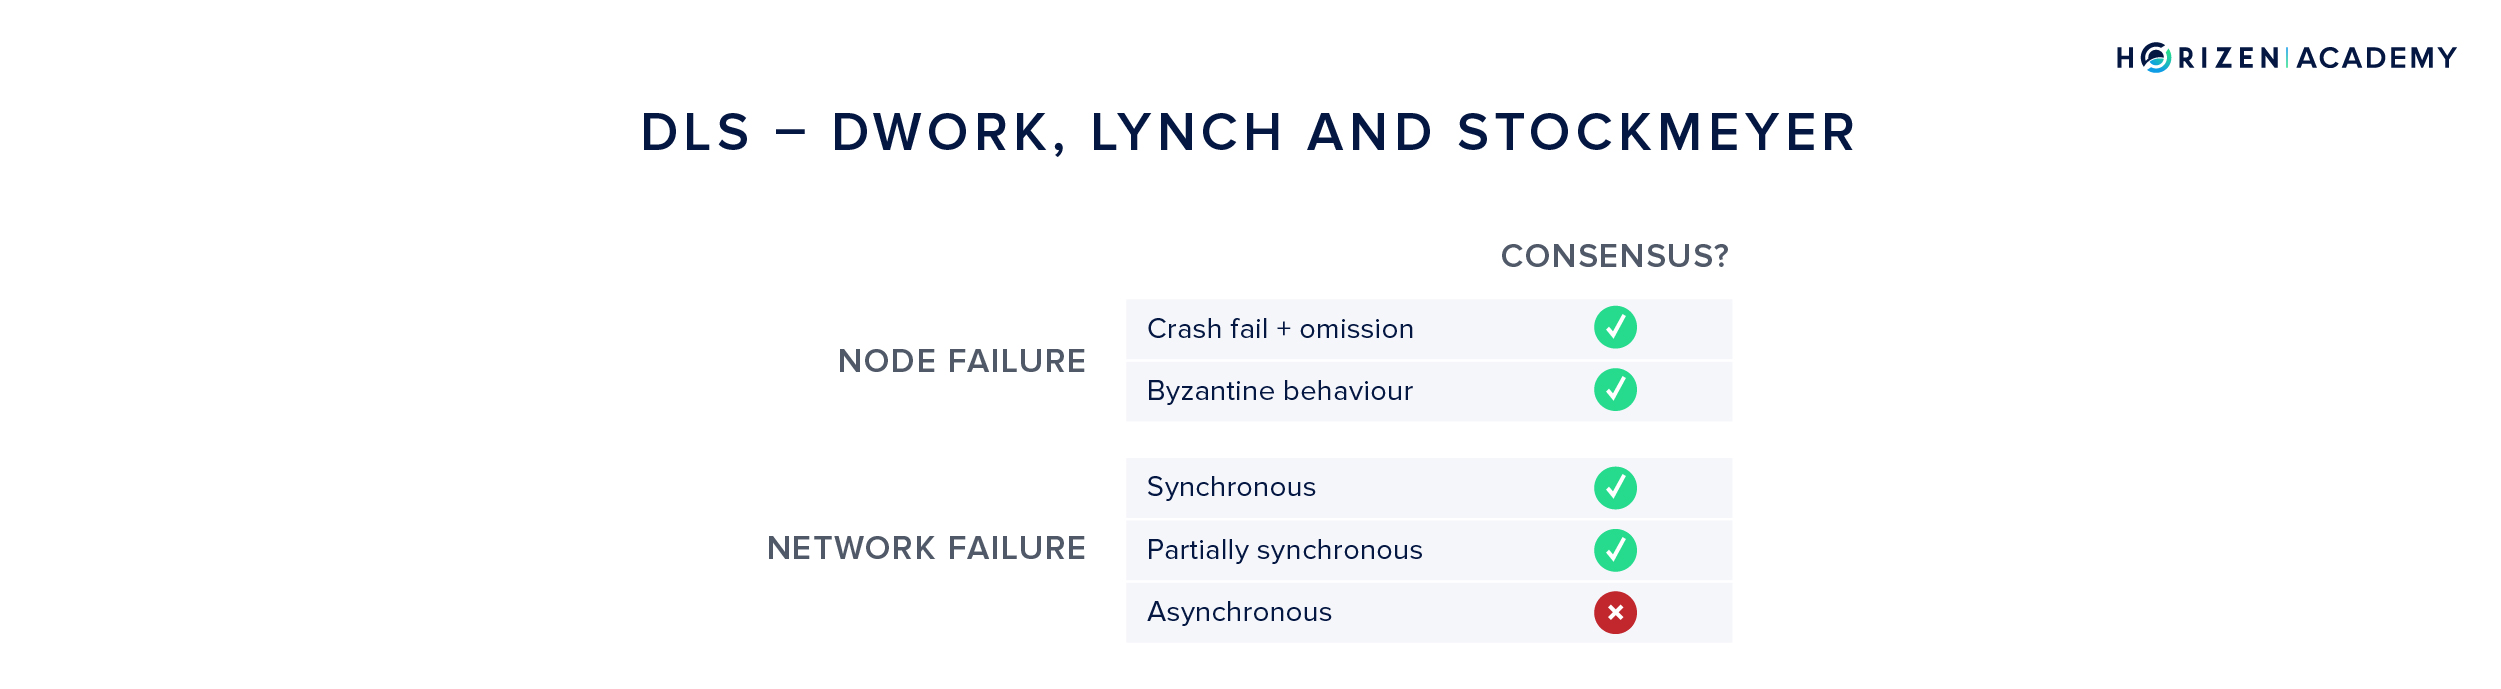 Dwork, Lynch and Stockmeyer Consensus